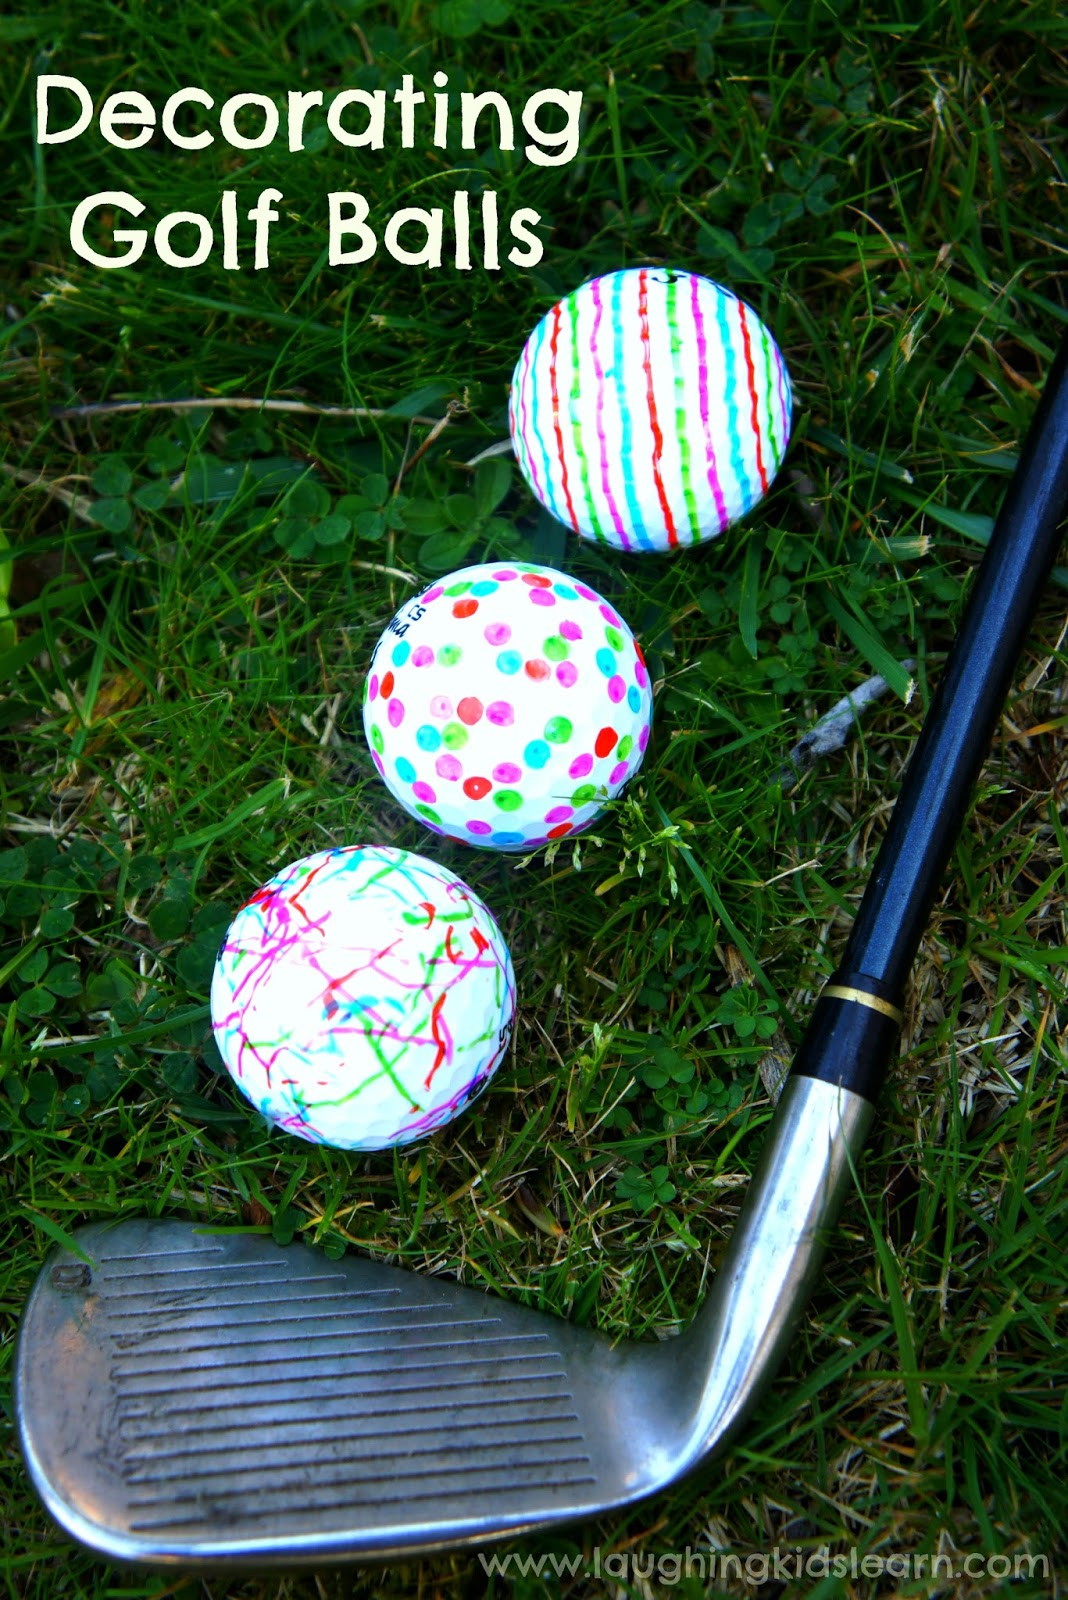 Decorating golf balls for father\'s day gift - Laughing Kids Learn